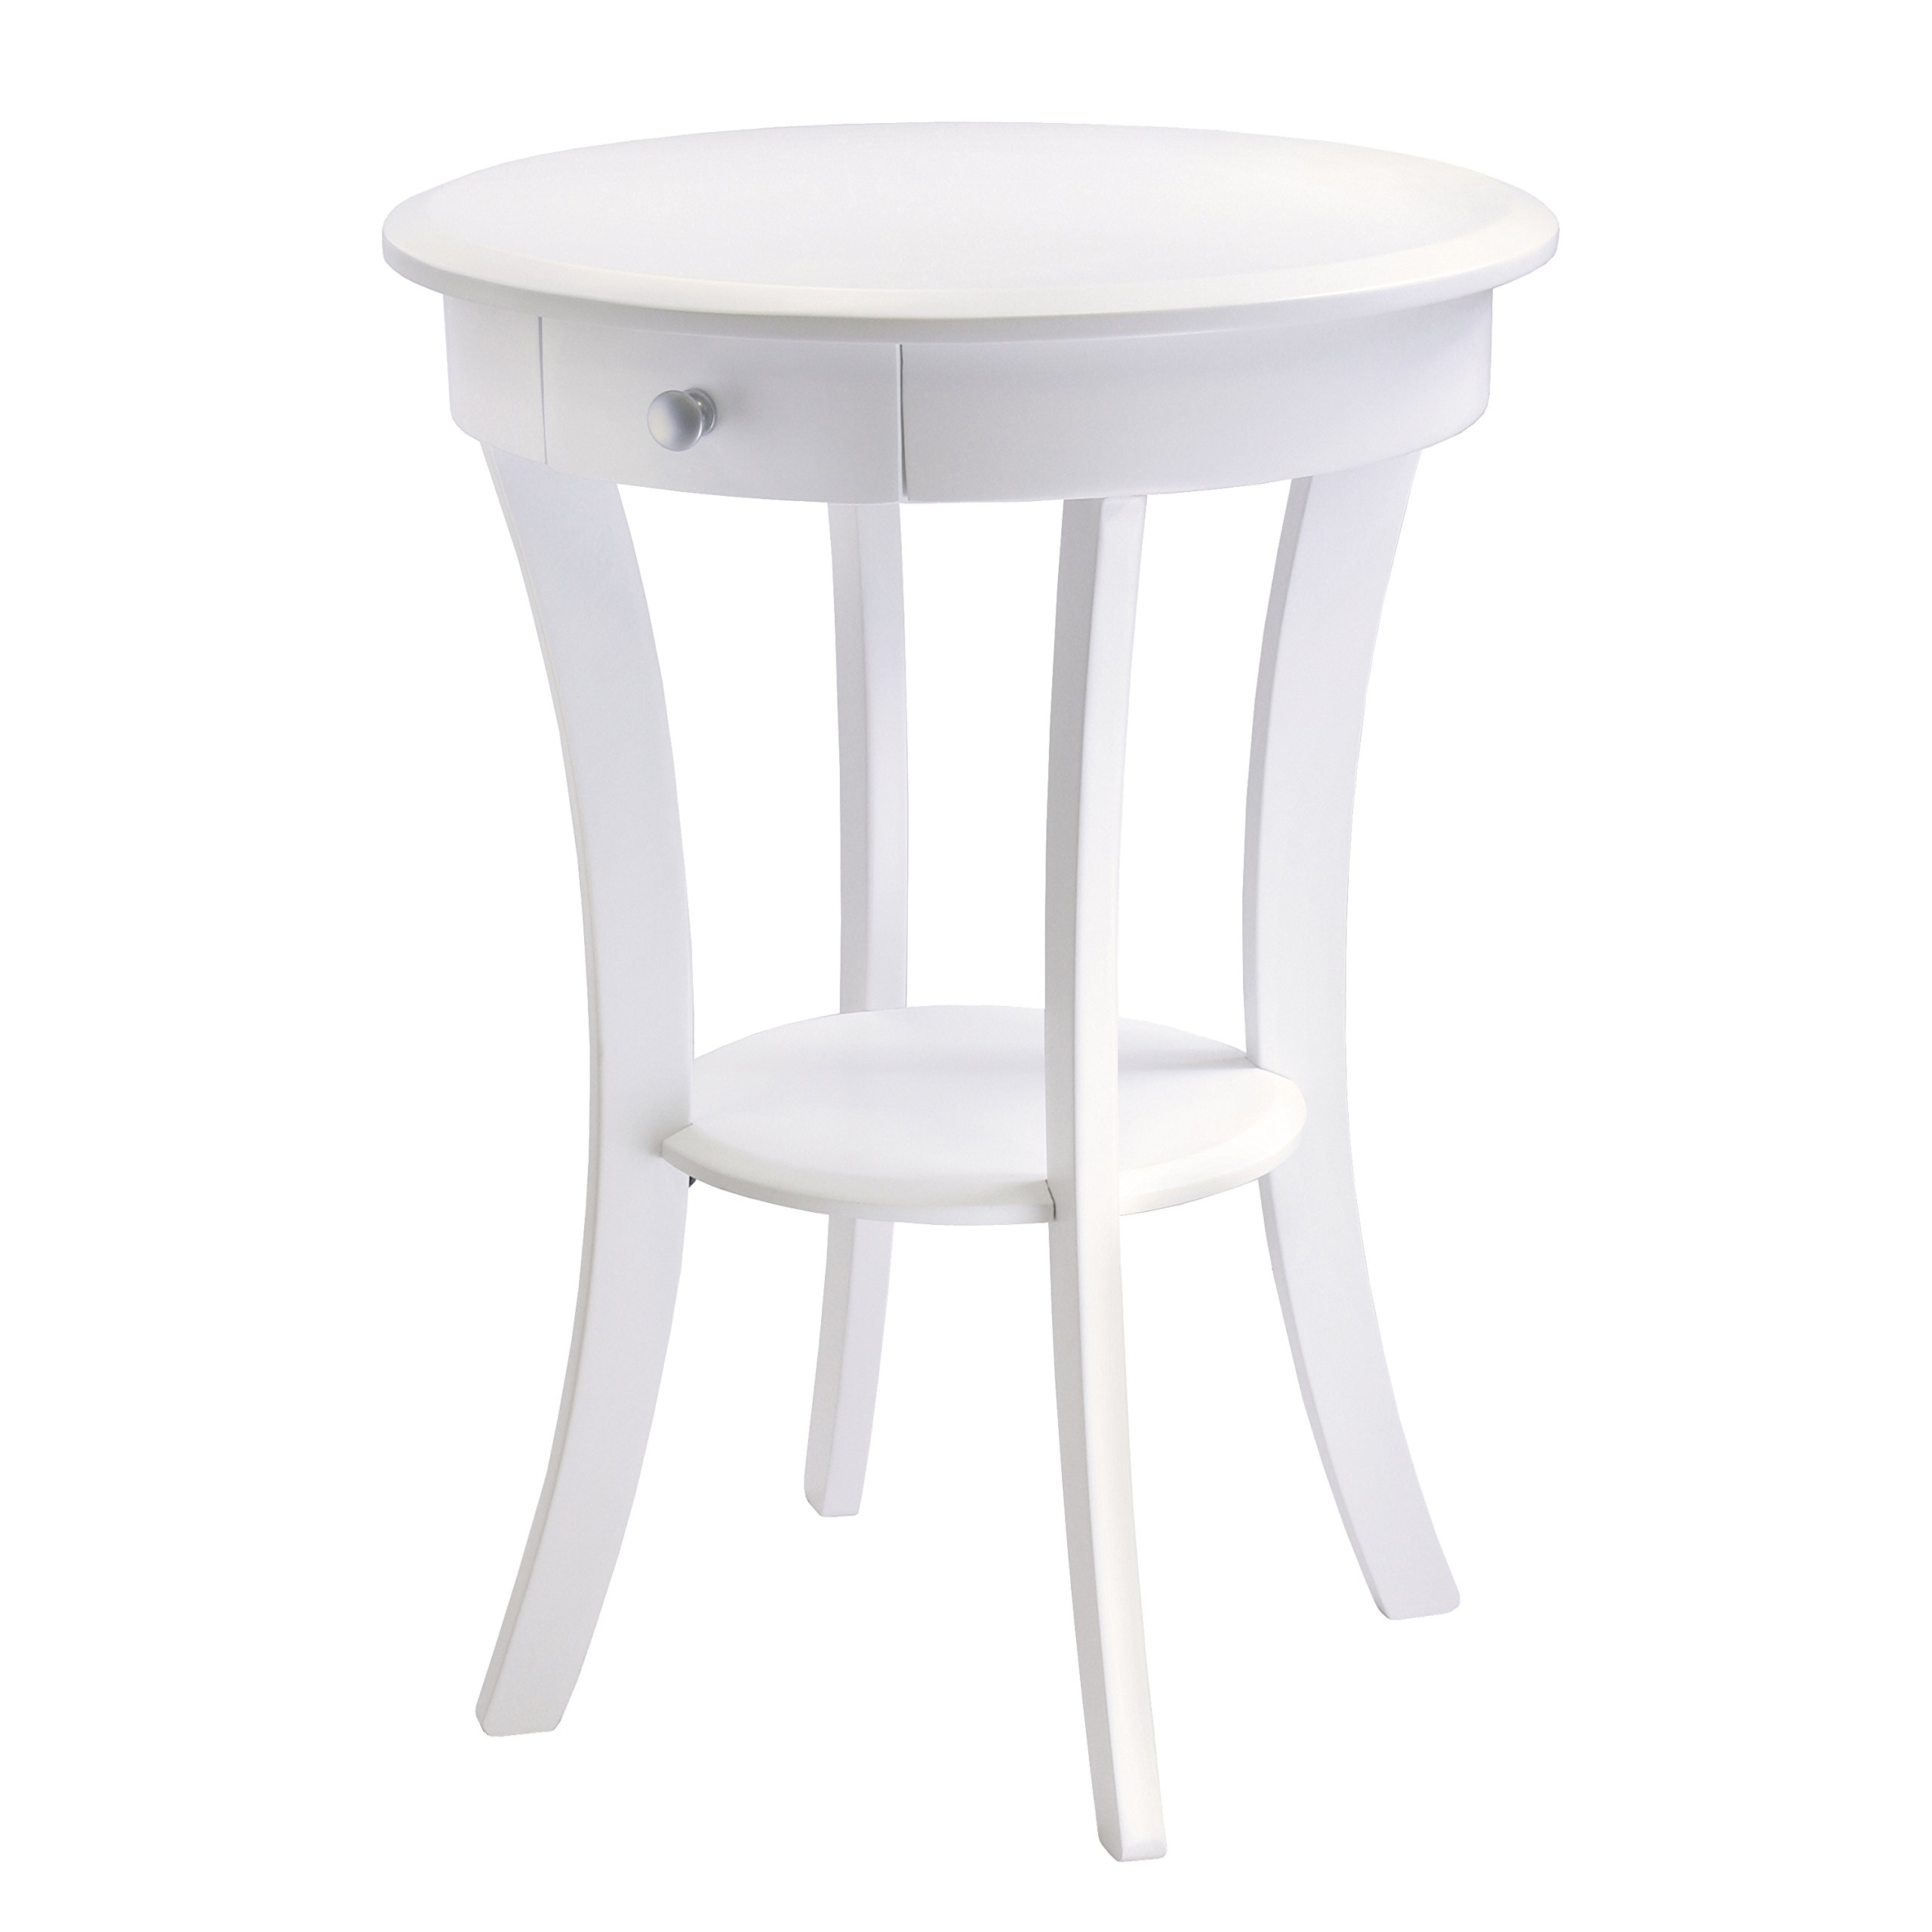 extraordinary simple entertainment center design adorable wood threshold bench furniture antique and cabinet room round for tall ott gold target outdoor decorative tables table